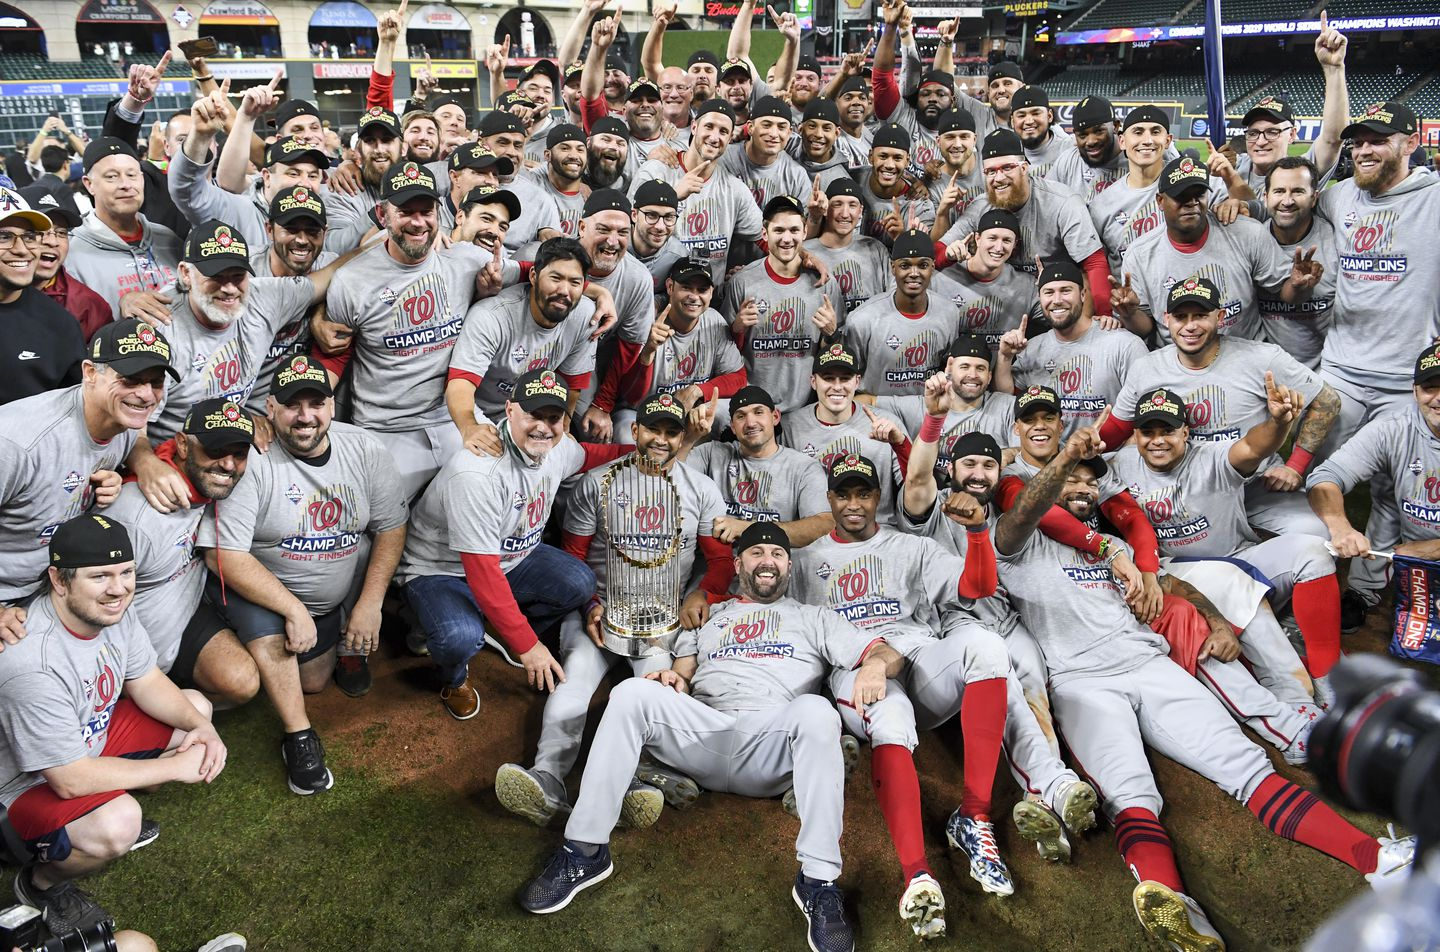 LEADERSHIP LESSONS FROM THE 2019 WORLD SERIES CHAMPIONS